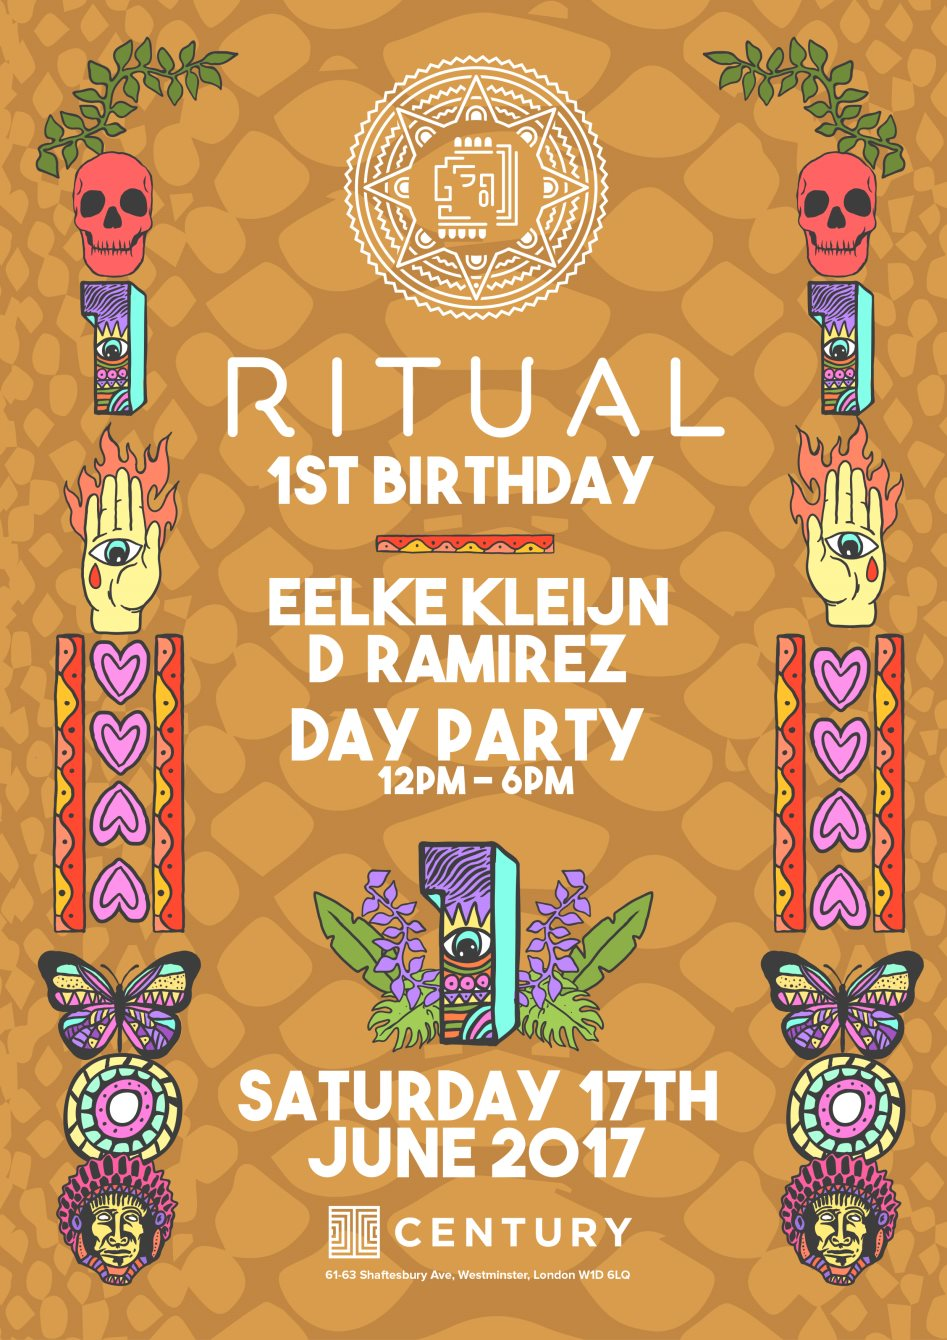 RITUAL 1ST BIRTHDAY - ROOFTOP DAY PARTY WITH EELKE KLEIJN, OC & VERDE, D RAMIREZ + AFTER PARTY